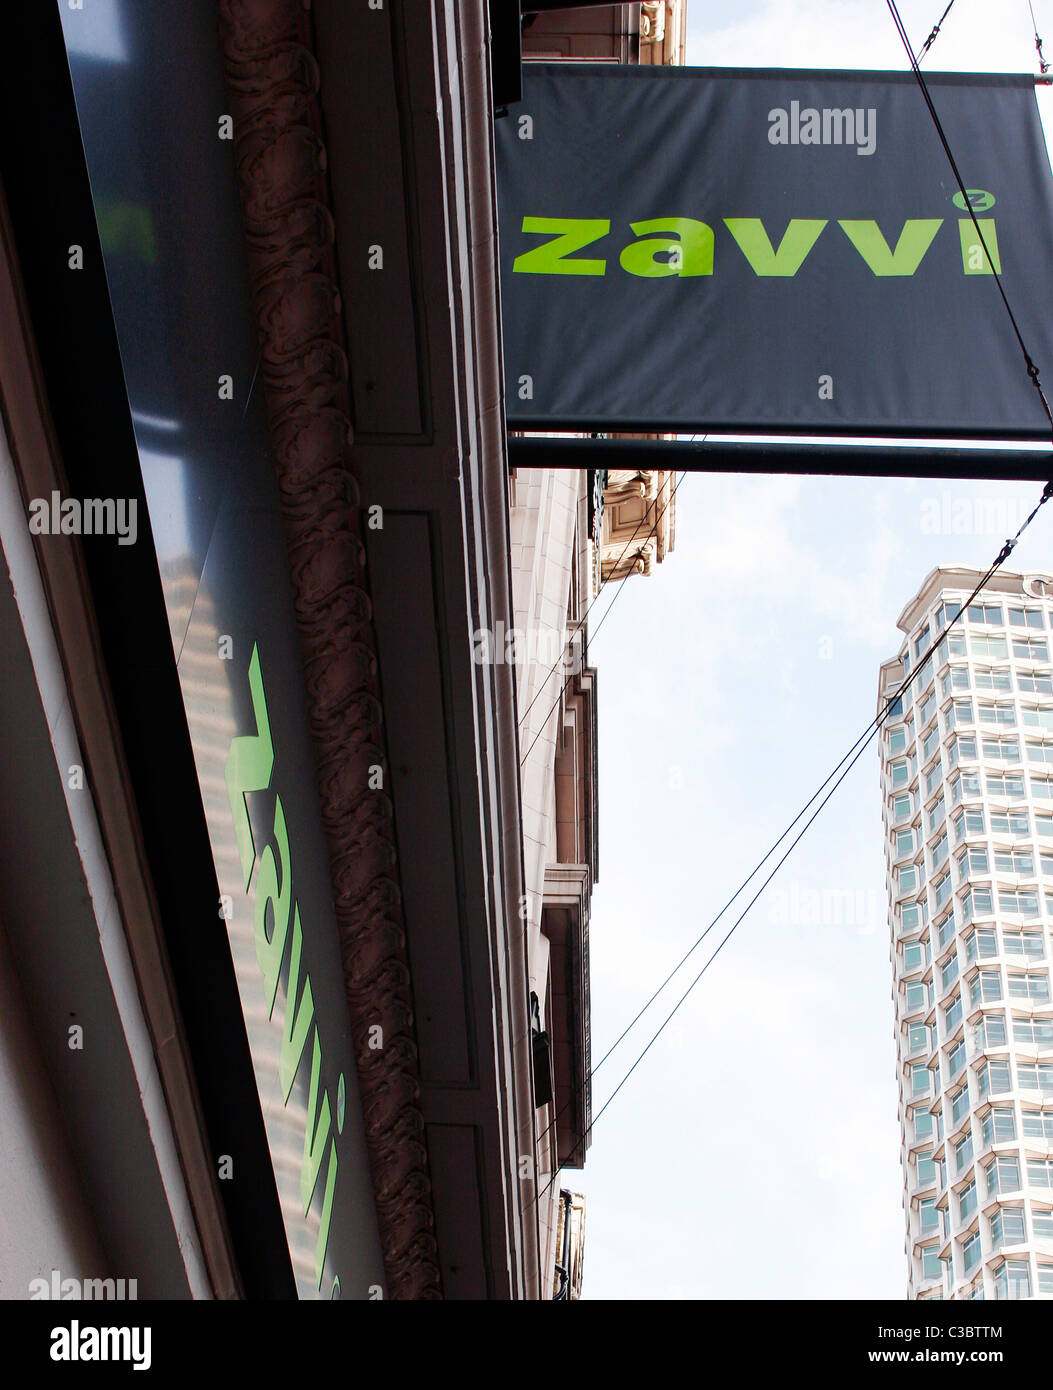 A flag outside an old branch of Zavvi, who went into administration in 2009. - Stock Image